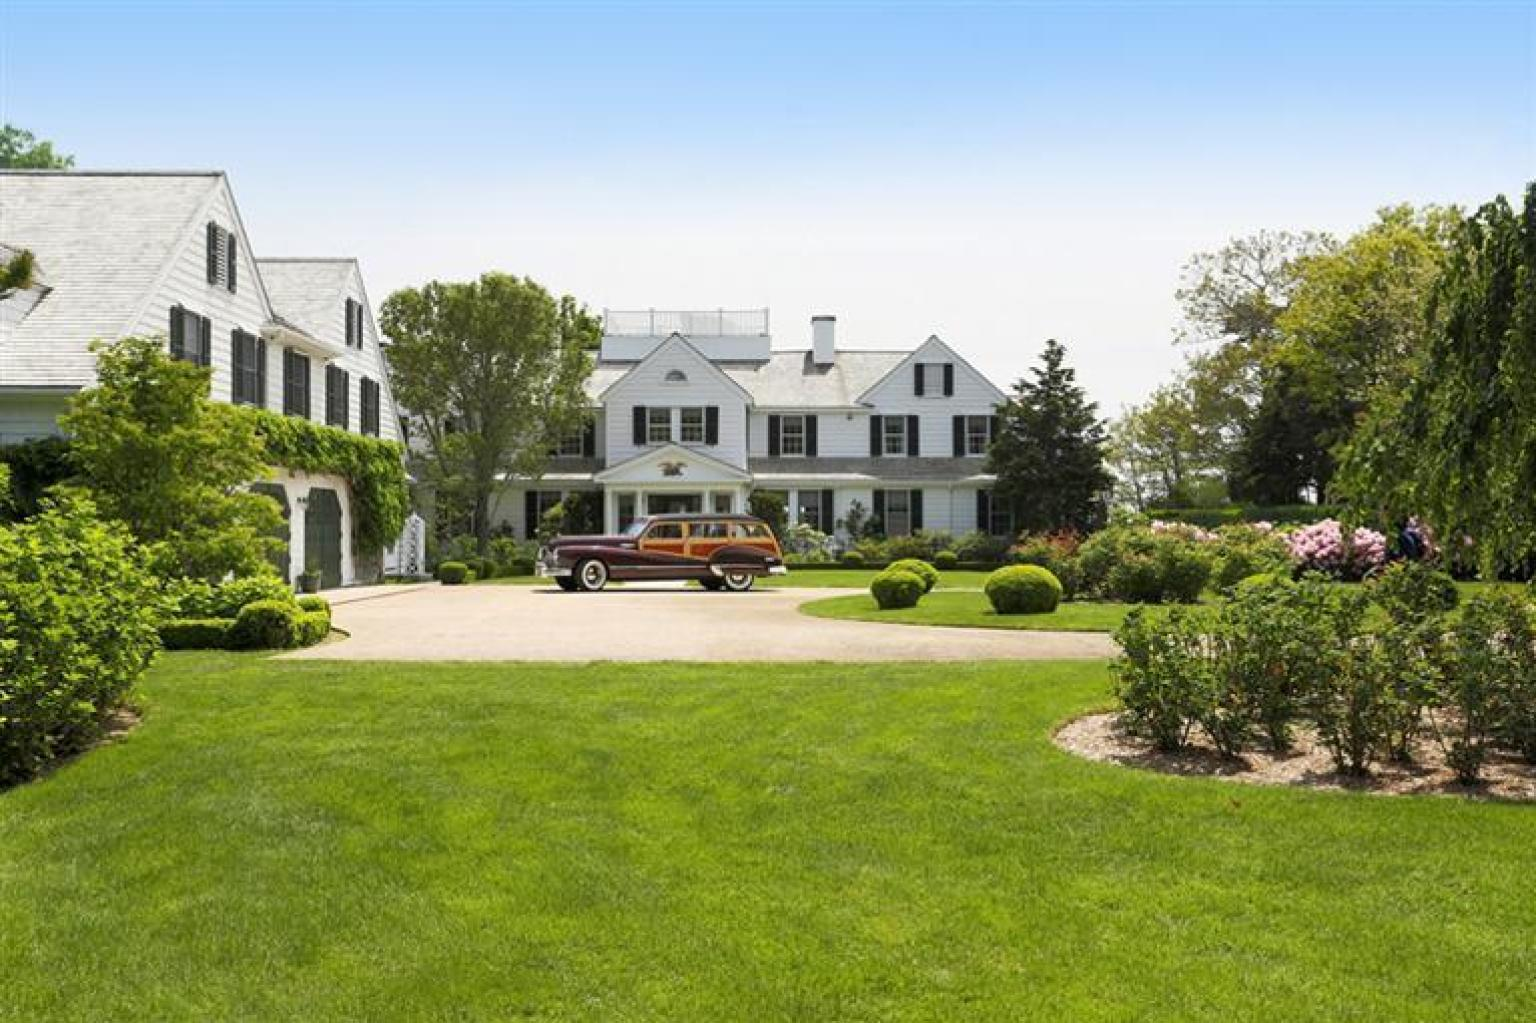 Bill koch 39 s house in cape cod is listed for 15 million for Cod home